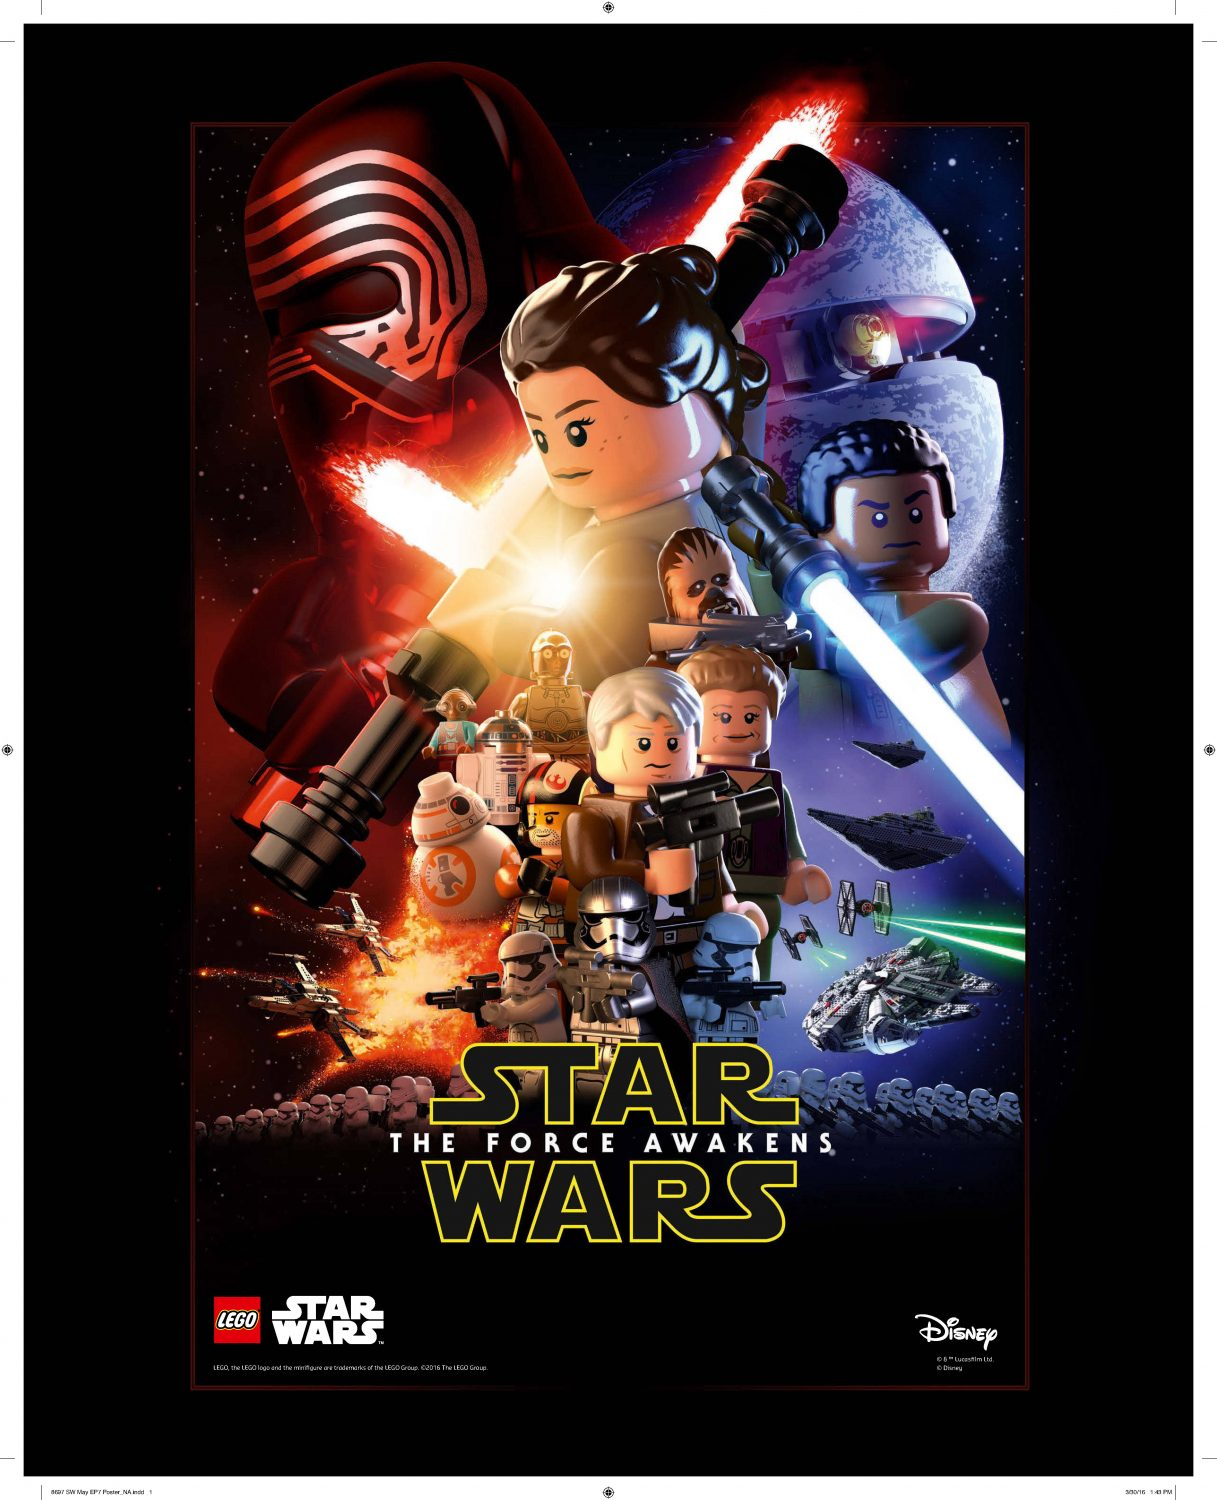 LEGO Celebrates May The 4th – Episode VII Poster & Promotion Starting Saturday